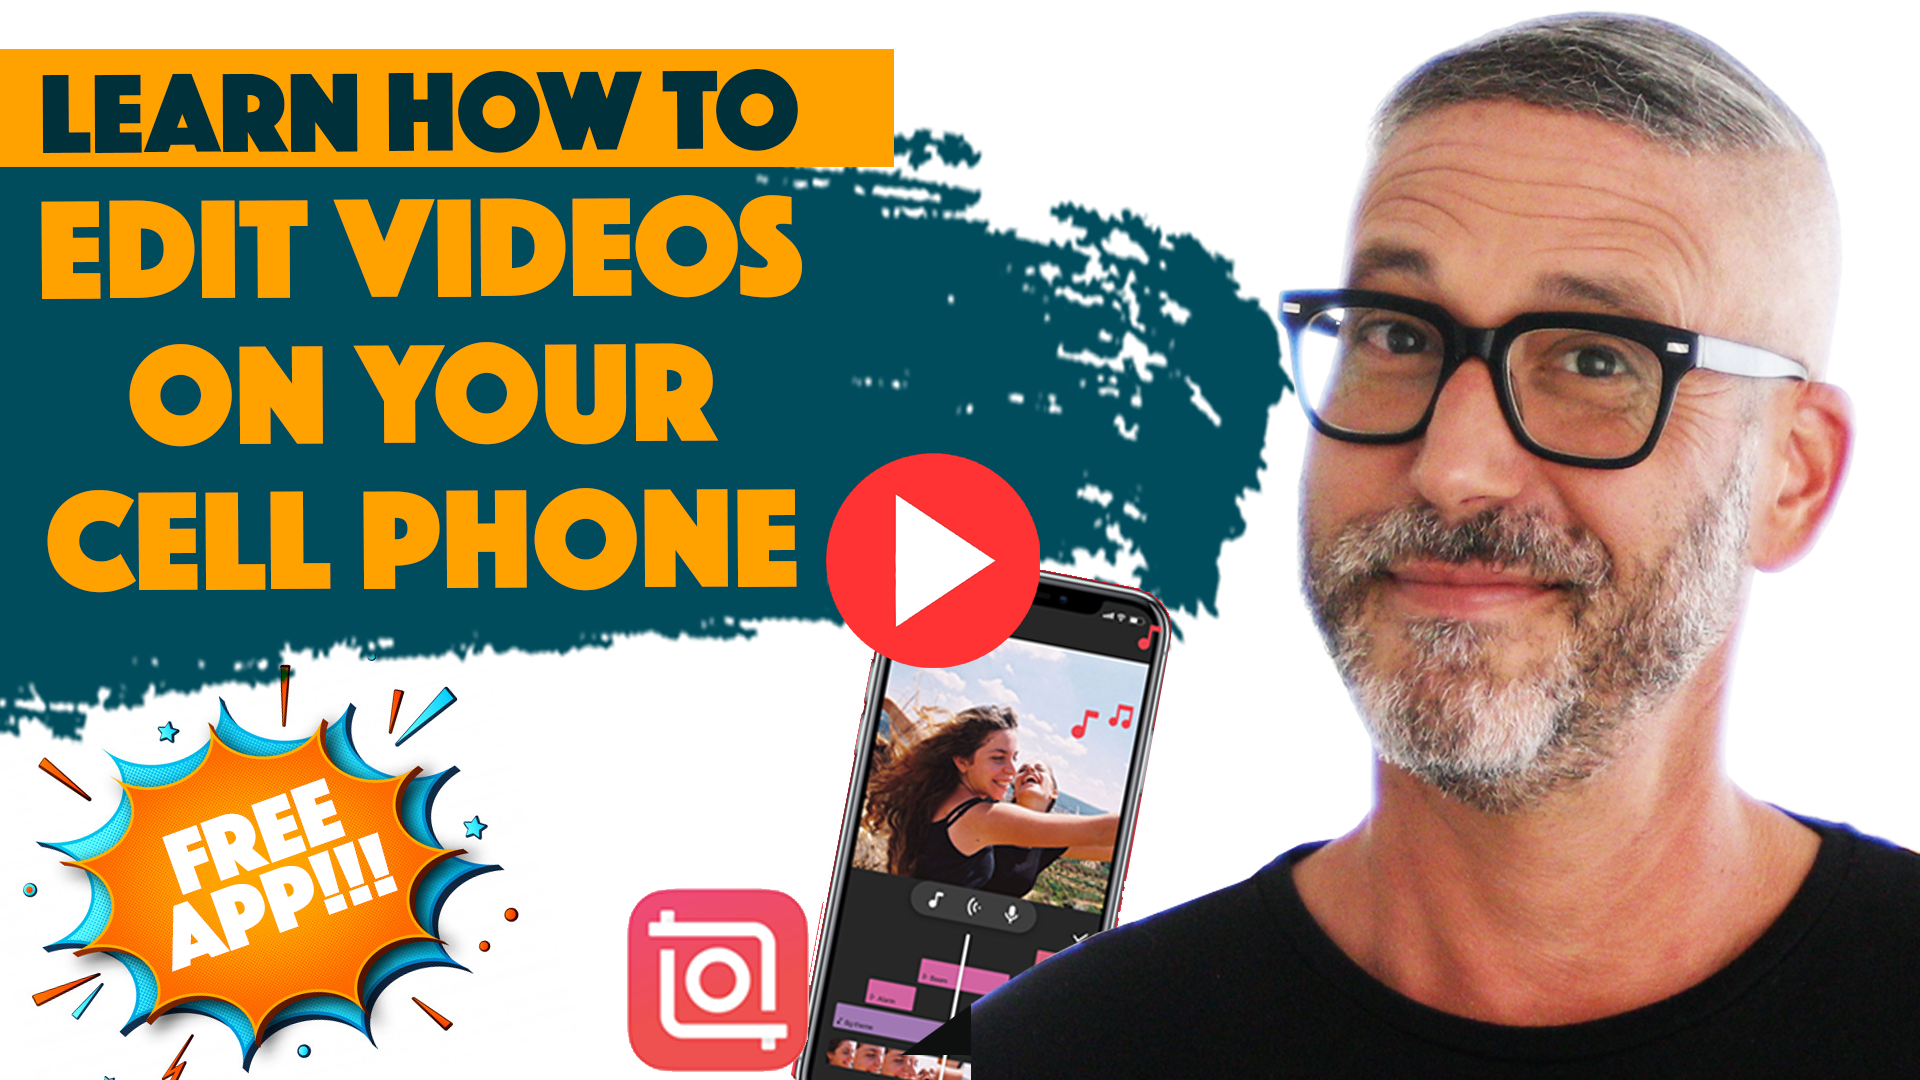 How to Edit Videos on your phone for free